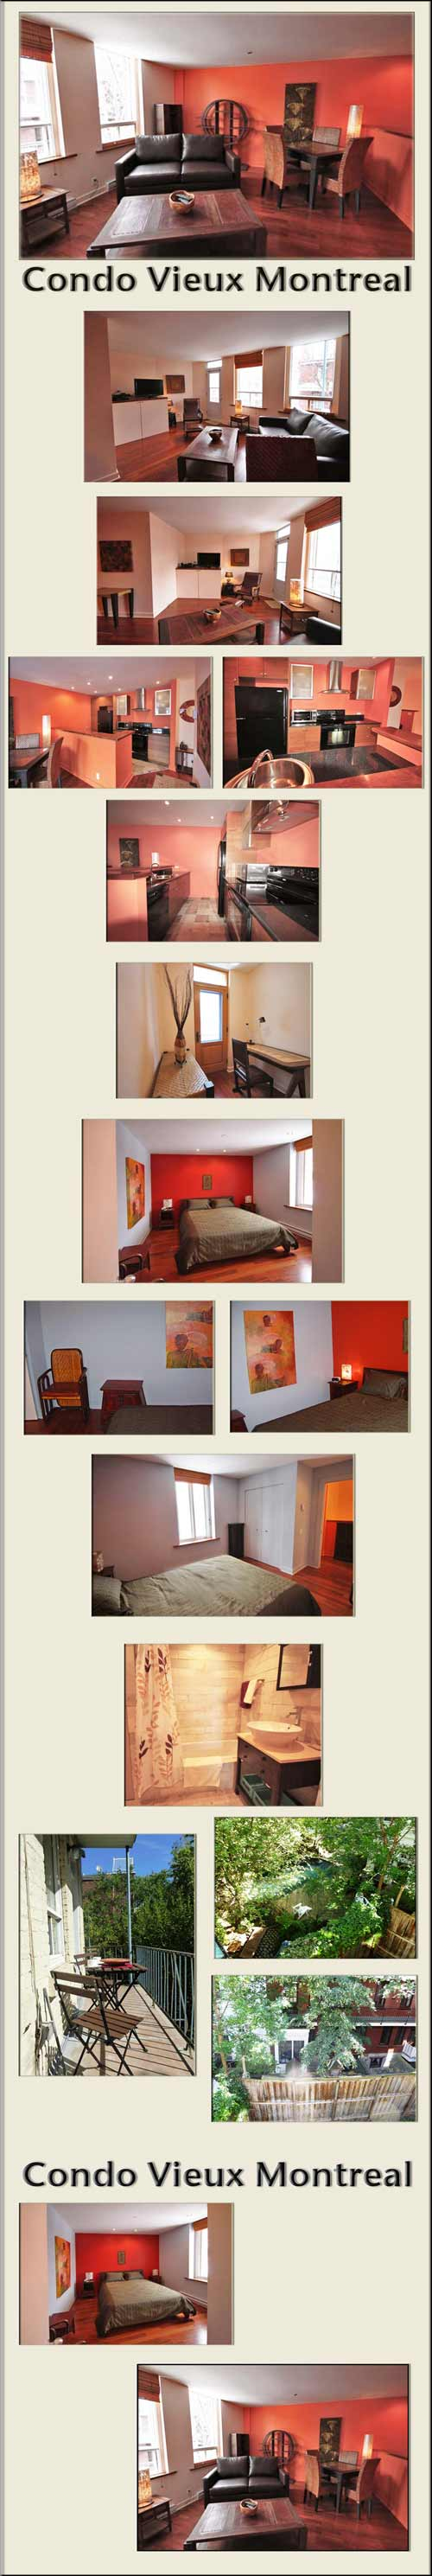 Montreal Canada vacation rental